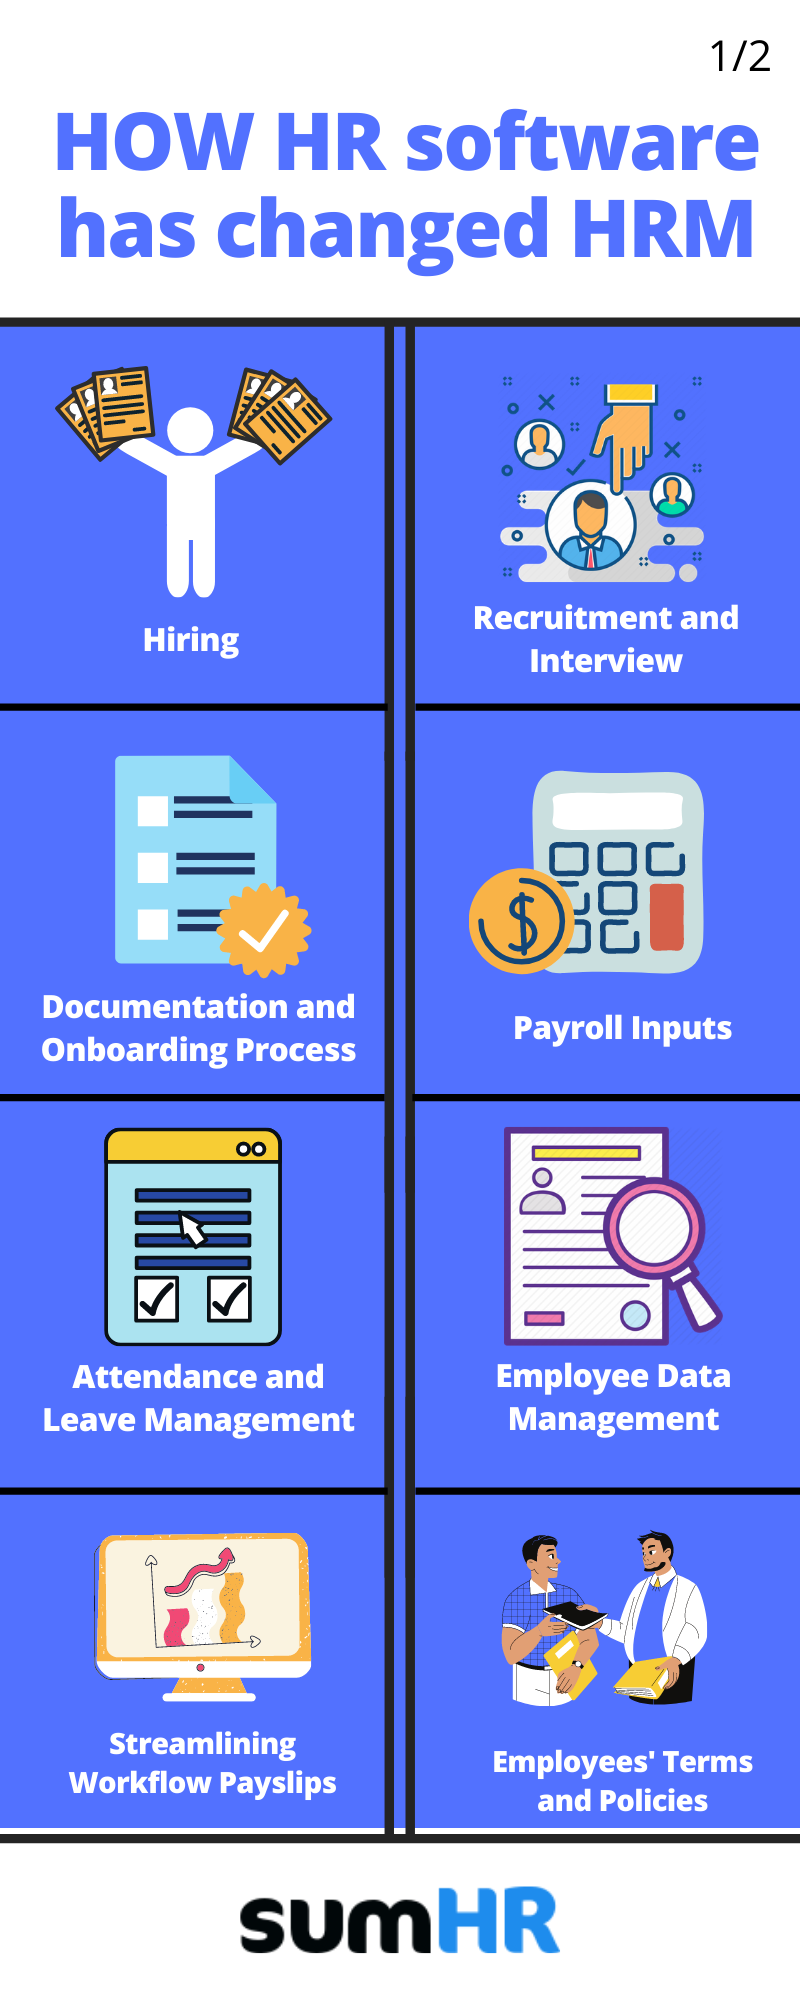 How HR Software has changed Human Resource Management